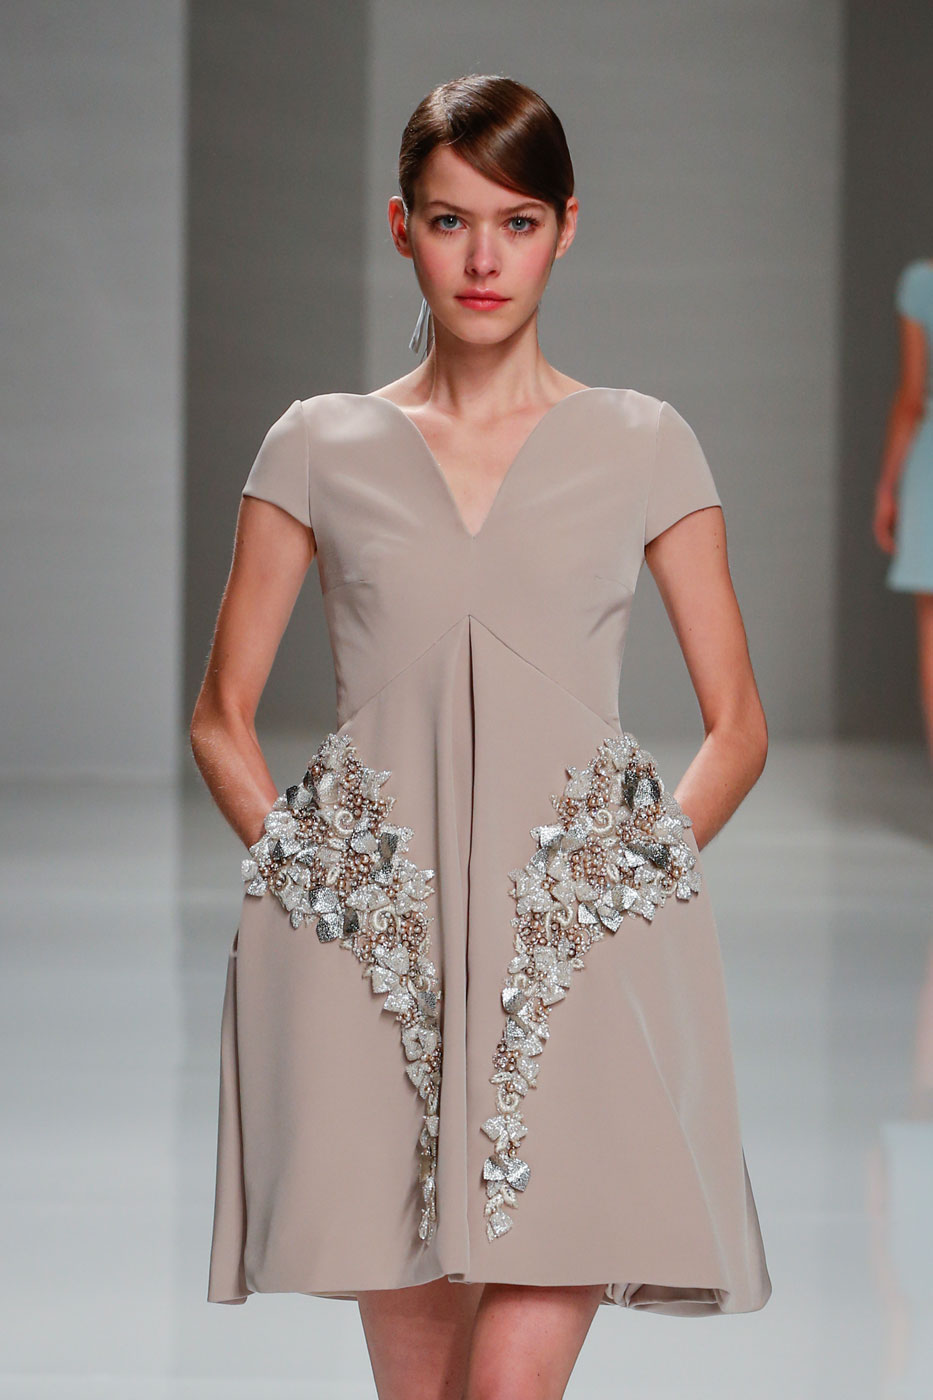 Georges-Hobeika-fashion-runway-show-haute-couture-paris-spring-2015-the-impression-30